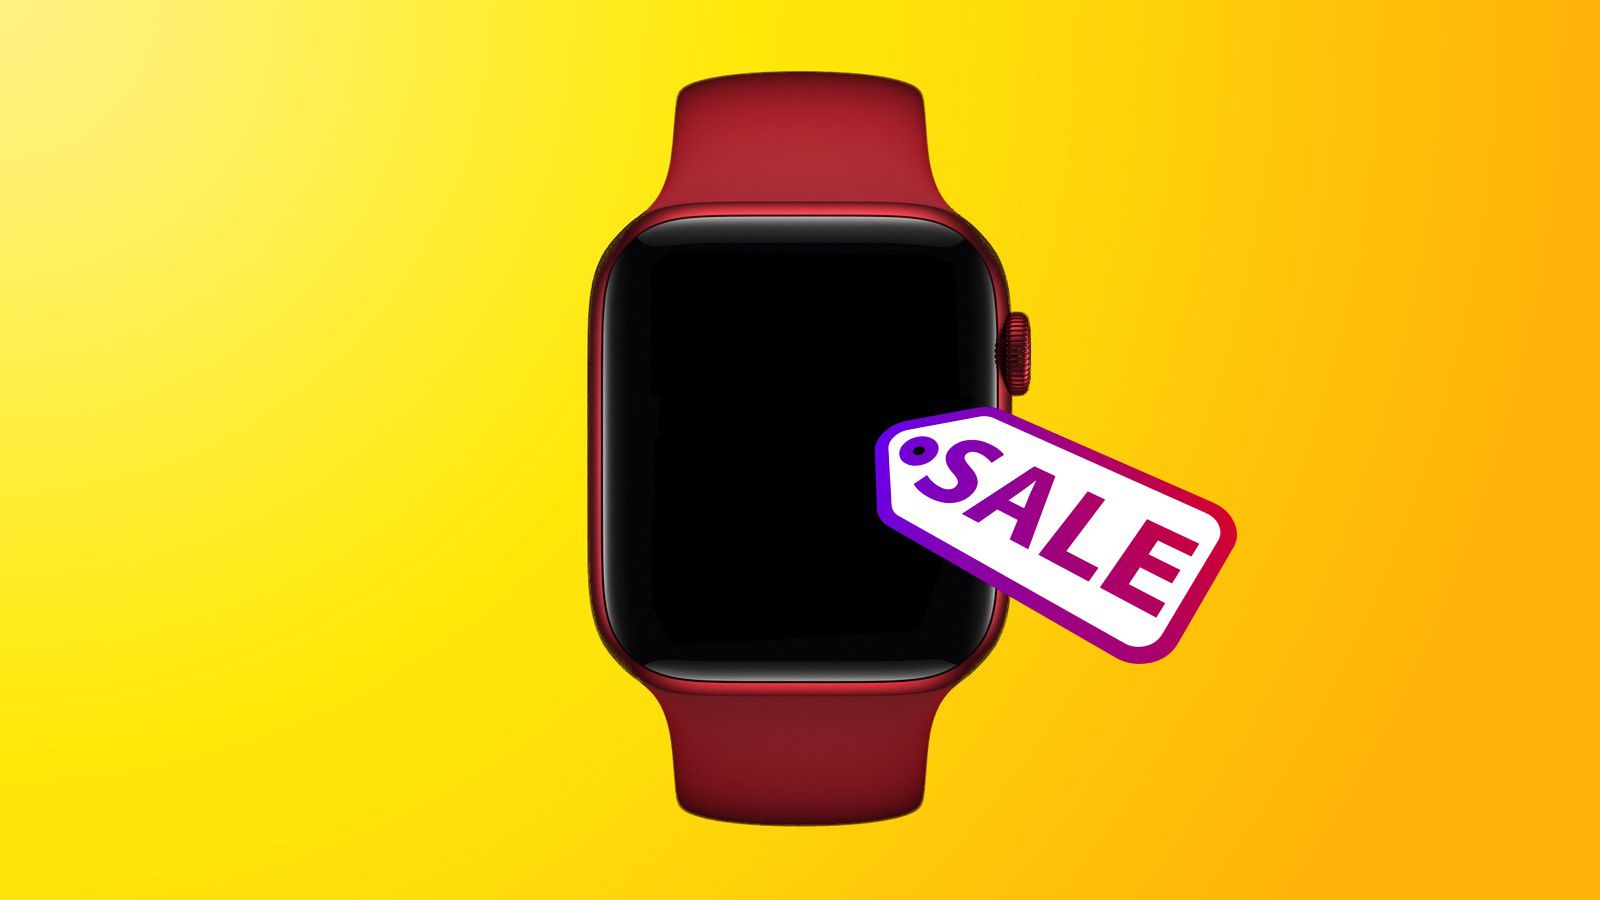 Deals: Grab the Apple Watch Series 6 in (Product)RED for $70 Off, Starting at $329 for 40mm